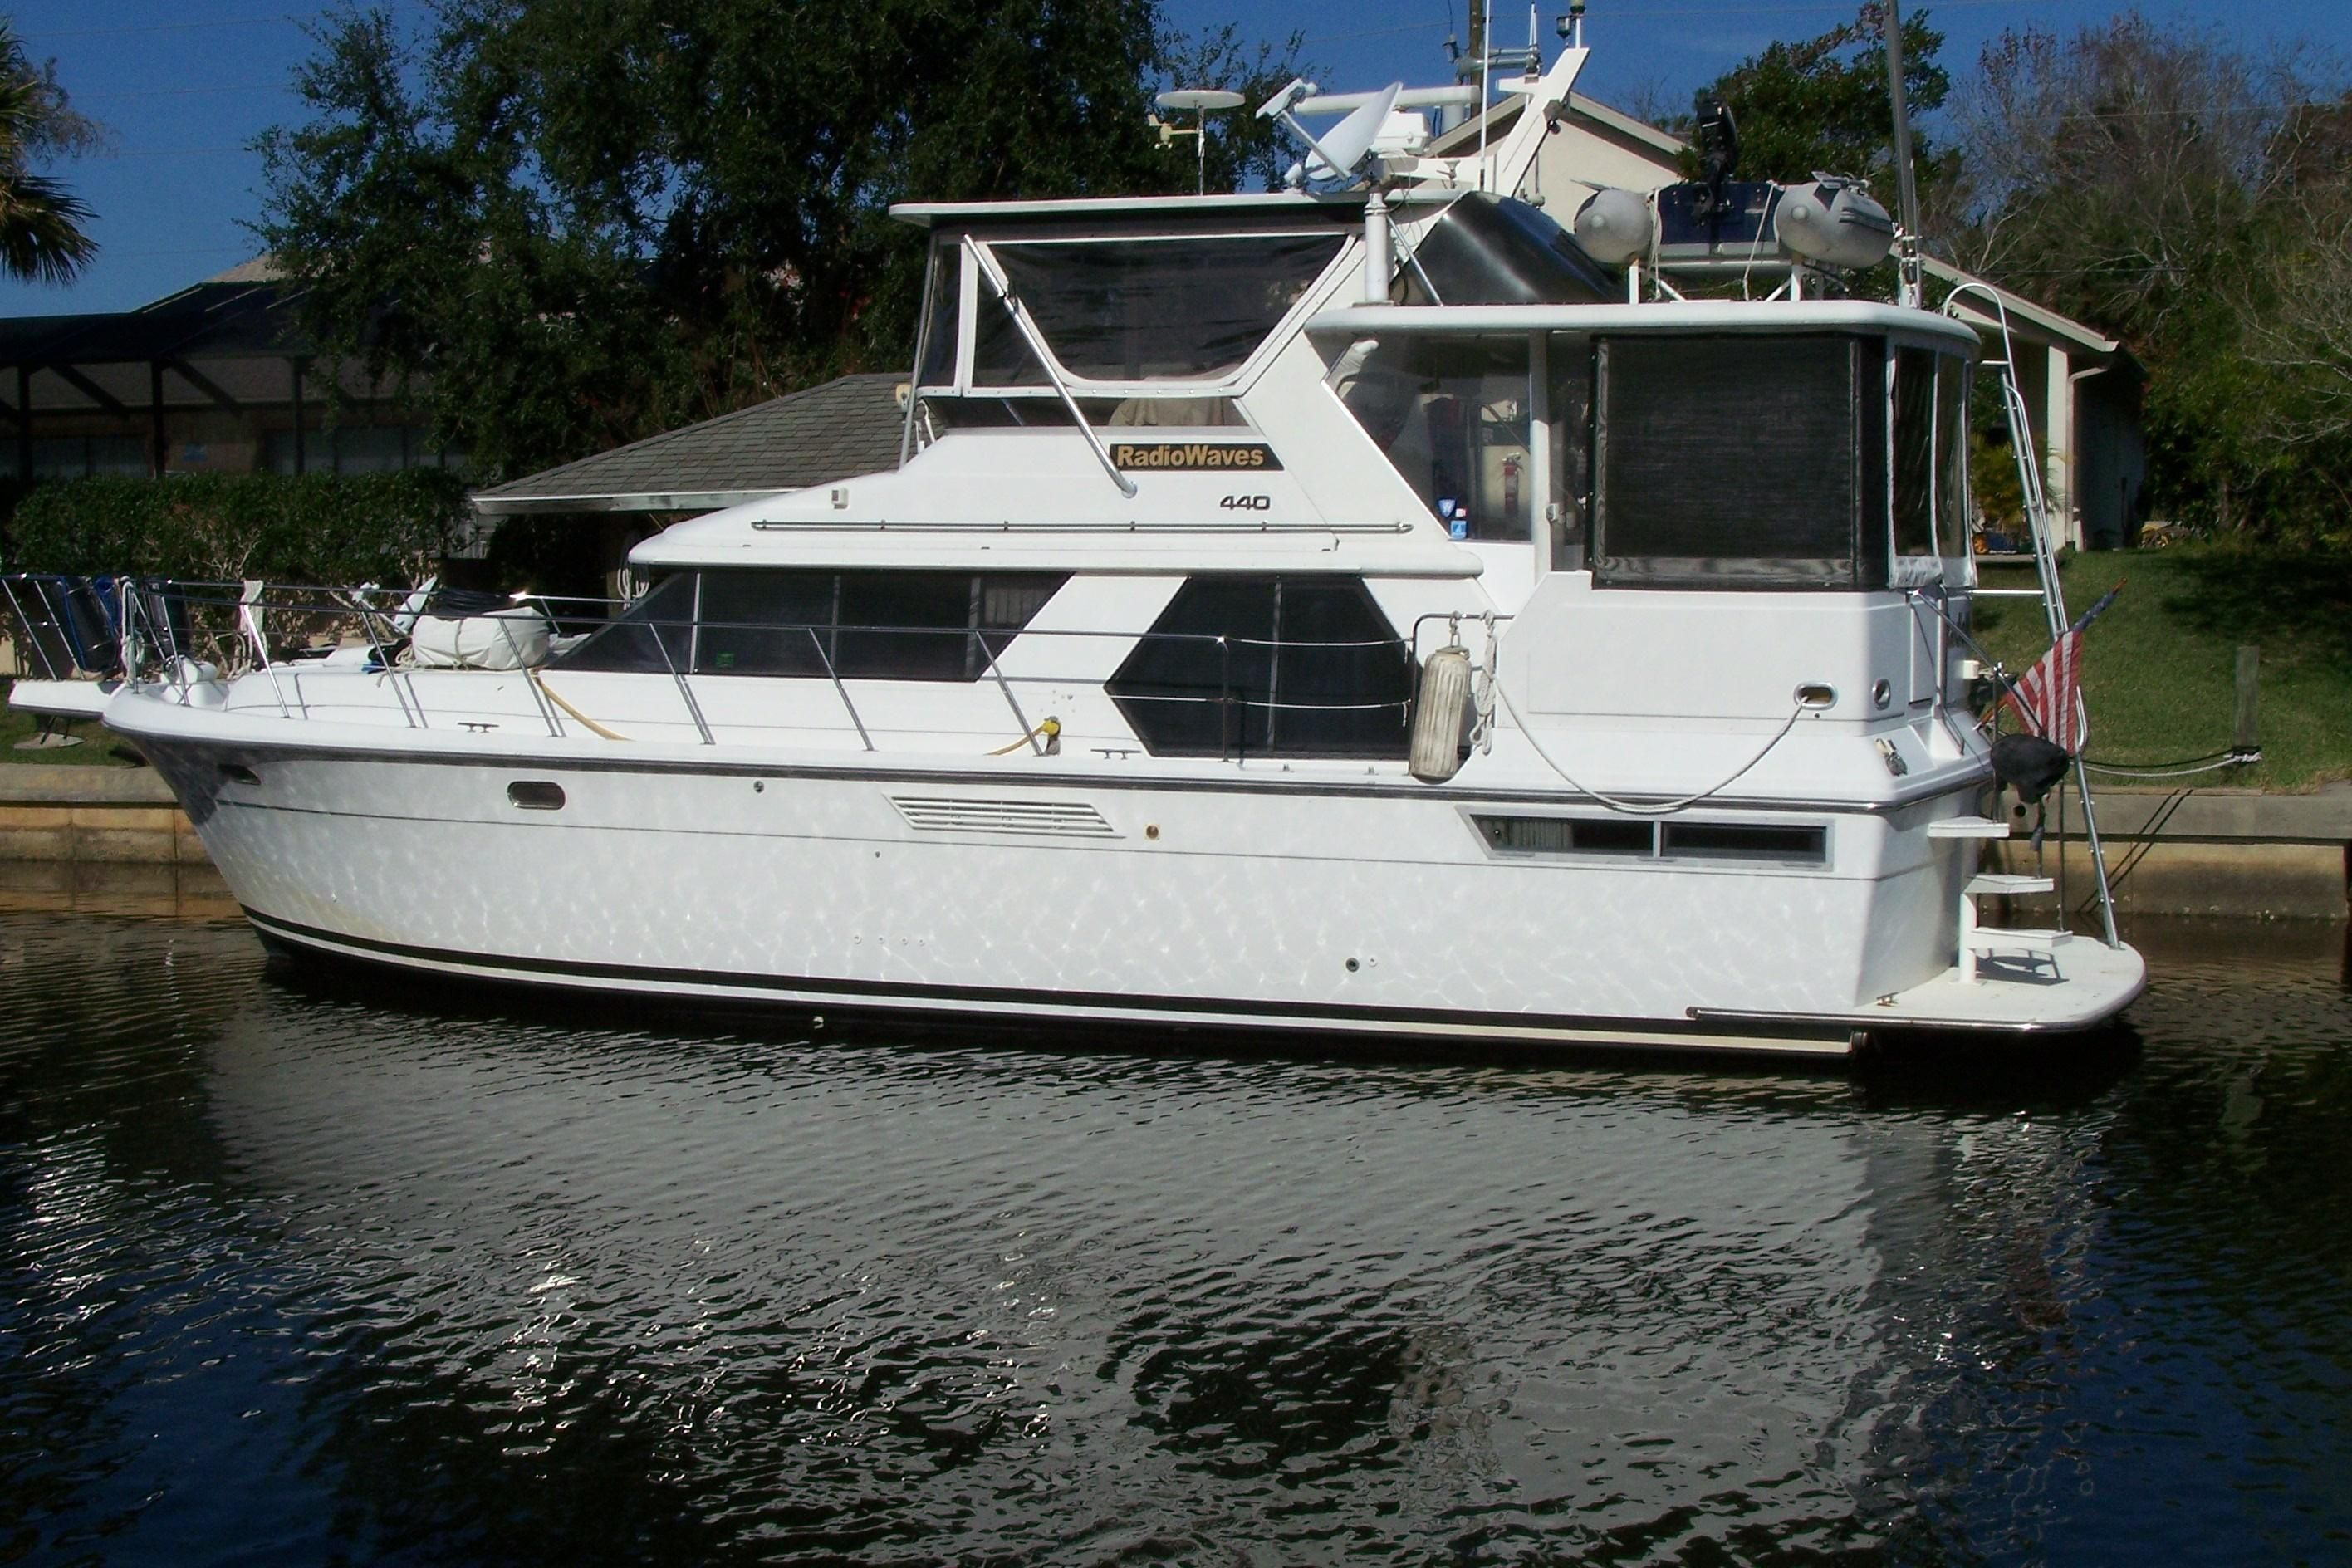 1993 Carver 440 Aft Cabin Motor Yacht Power Boat For Sale